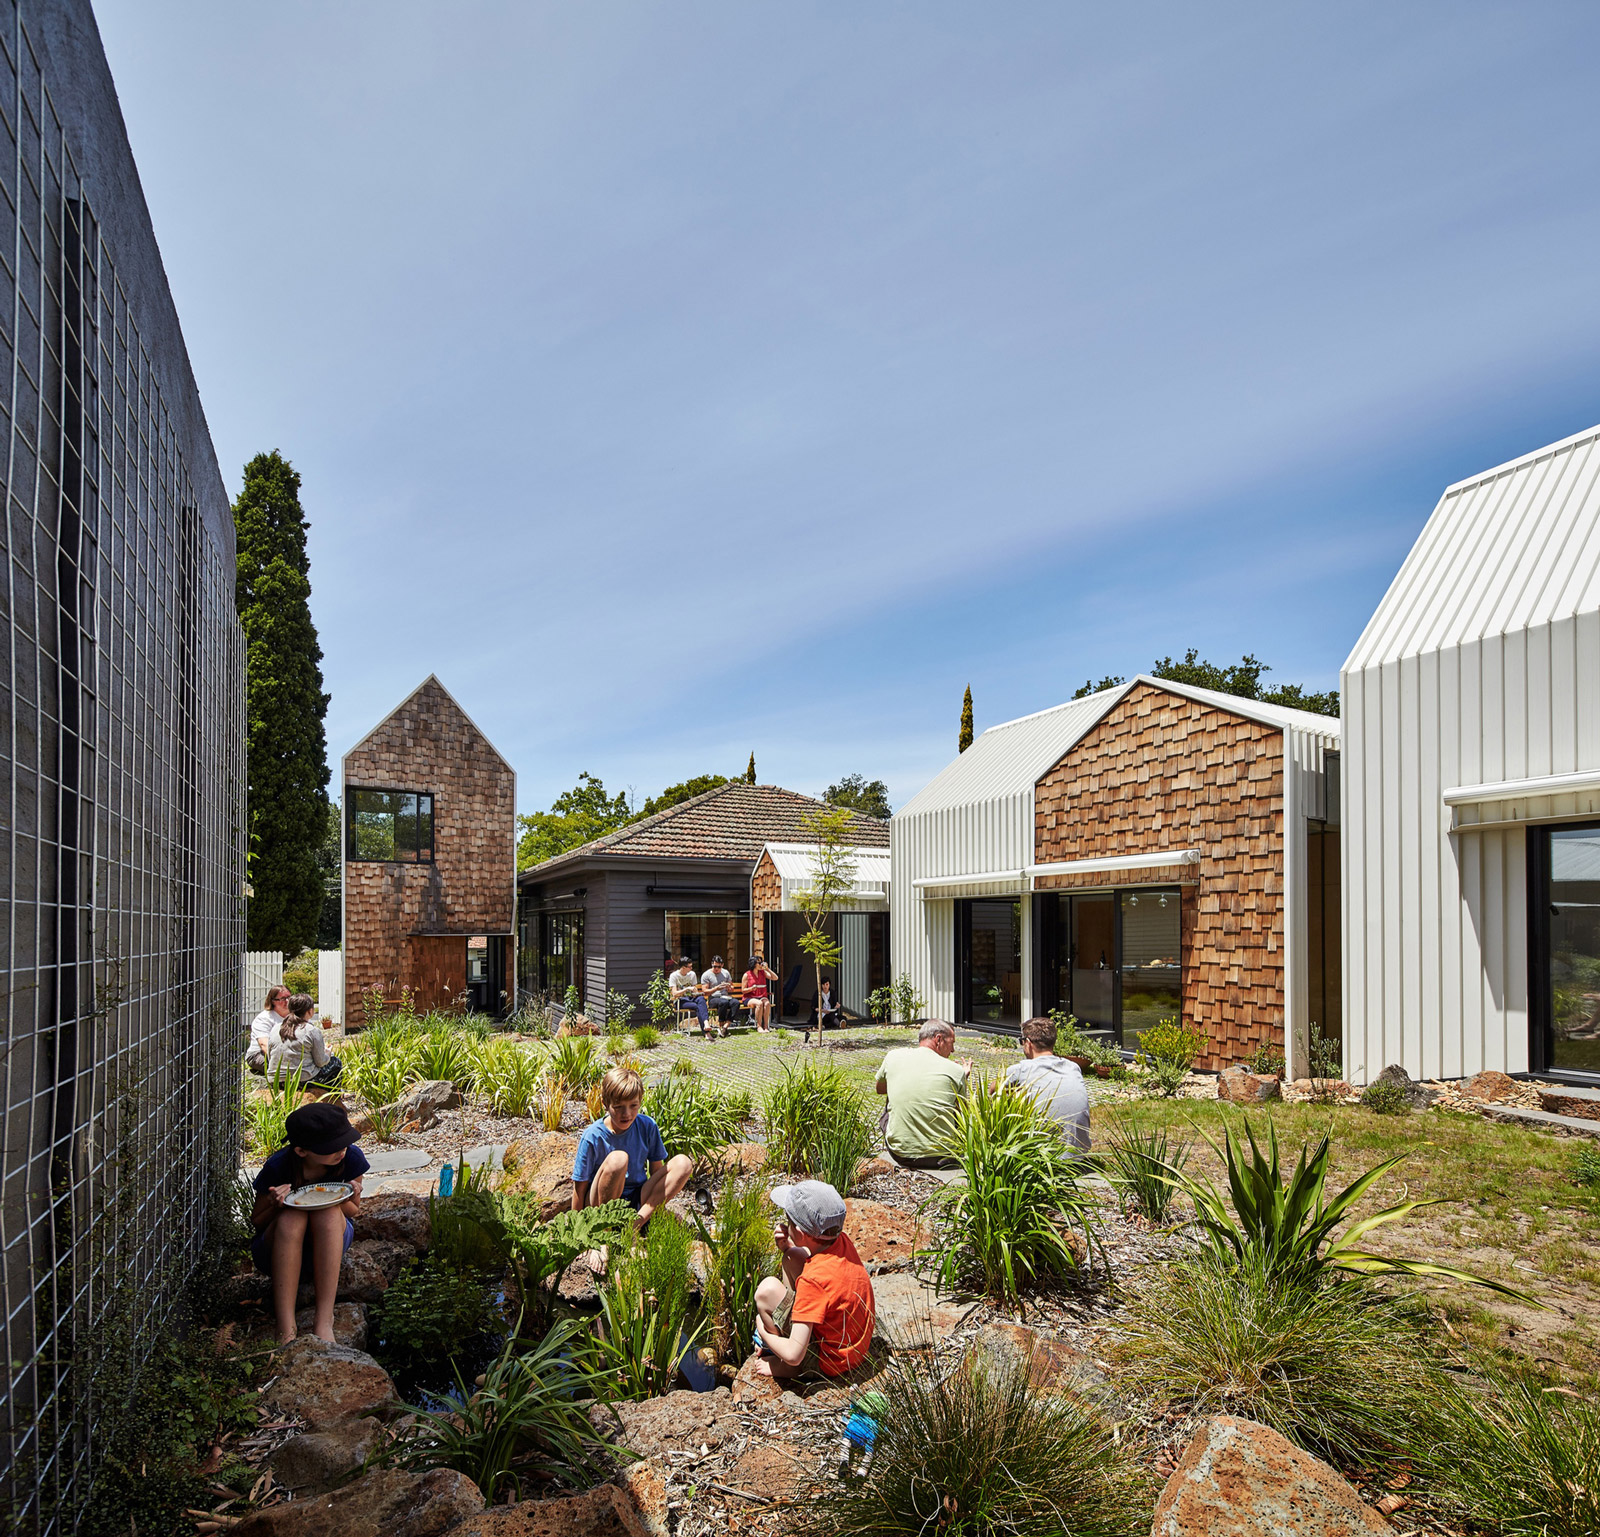 Tower House / Andrew Maynard Architects (27)